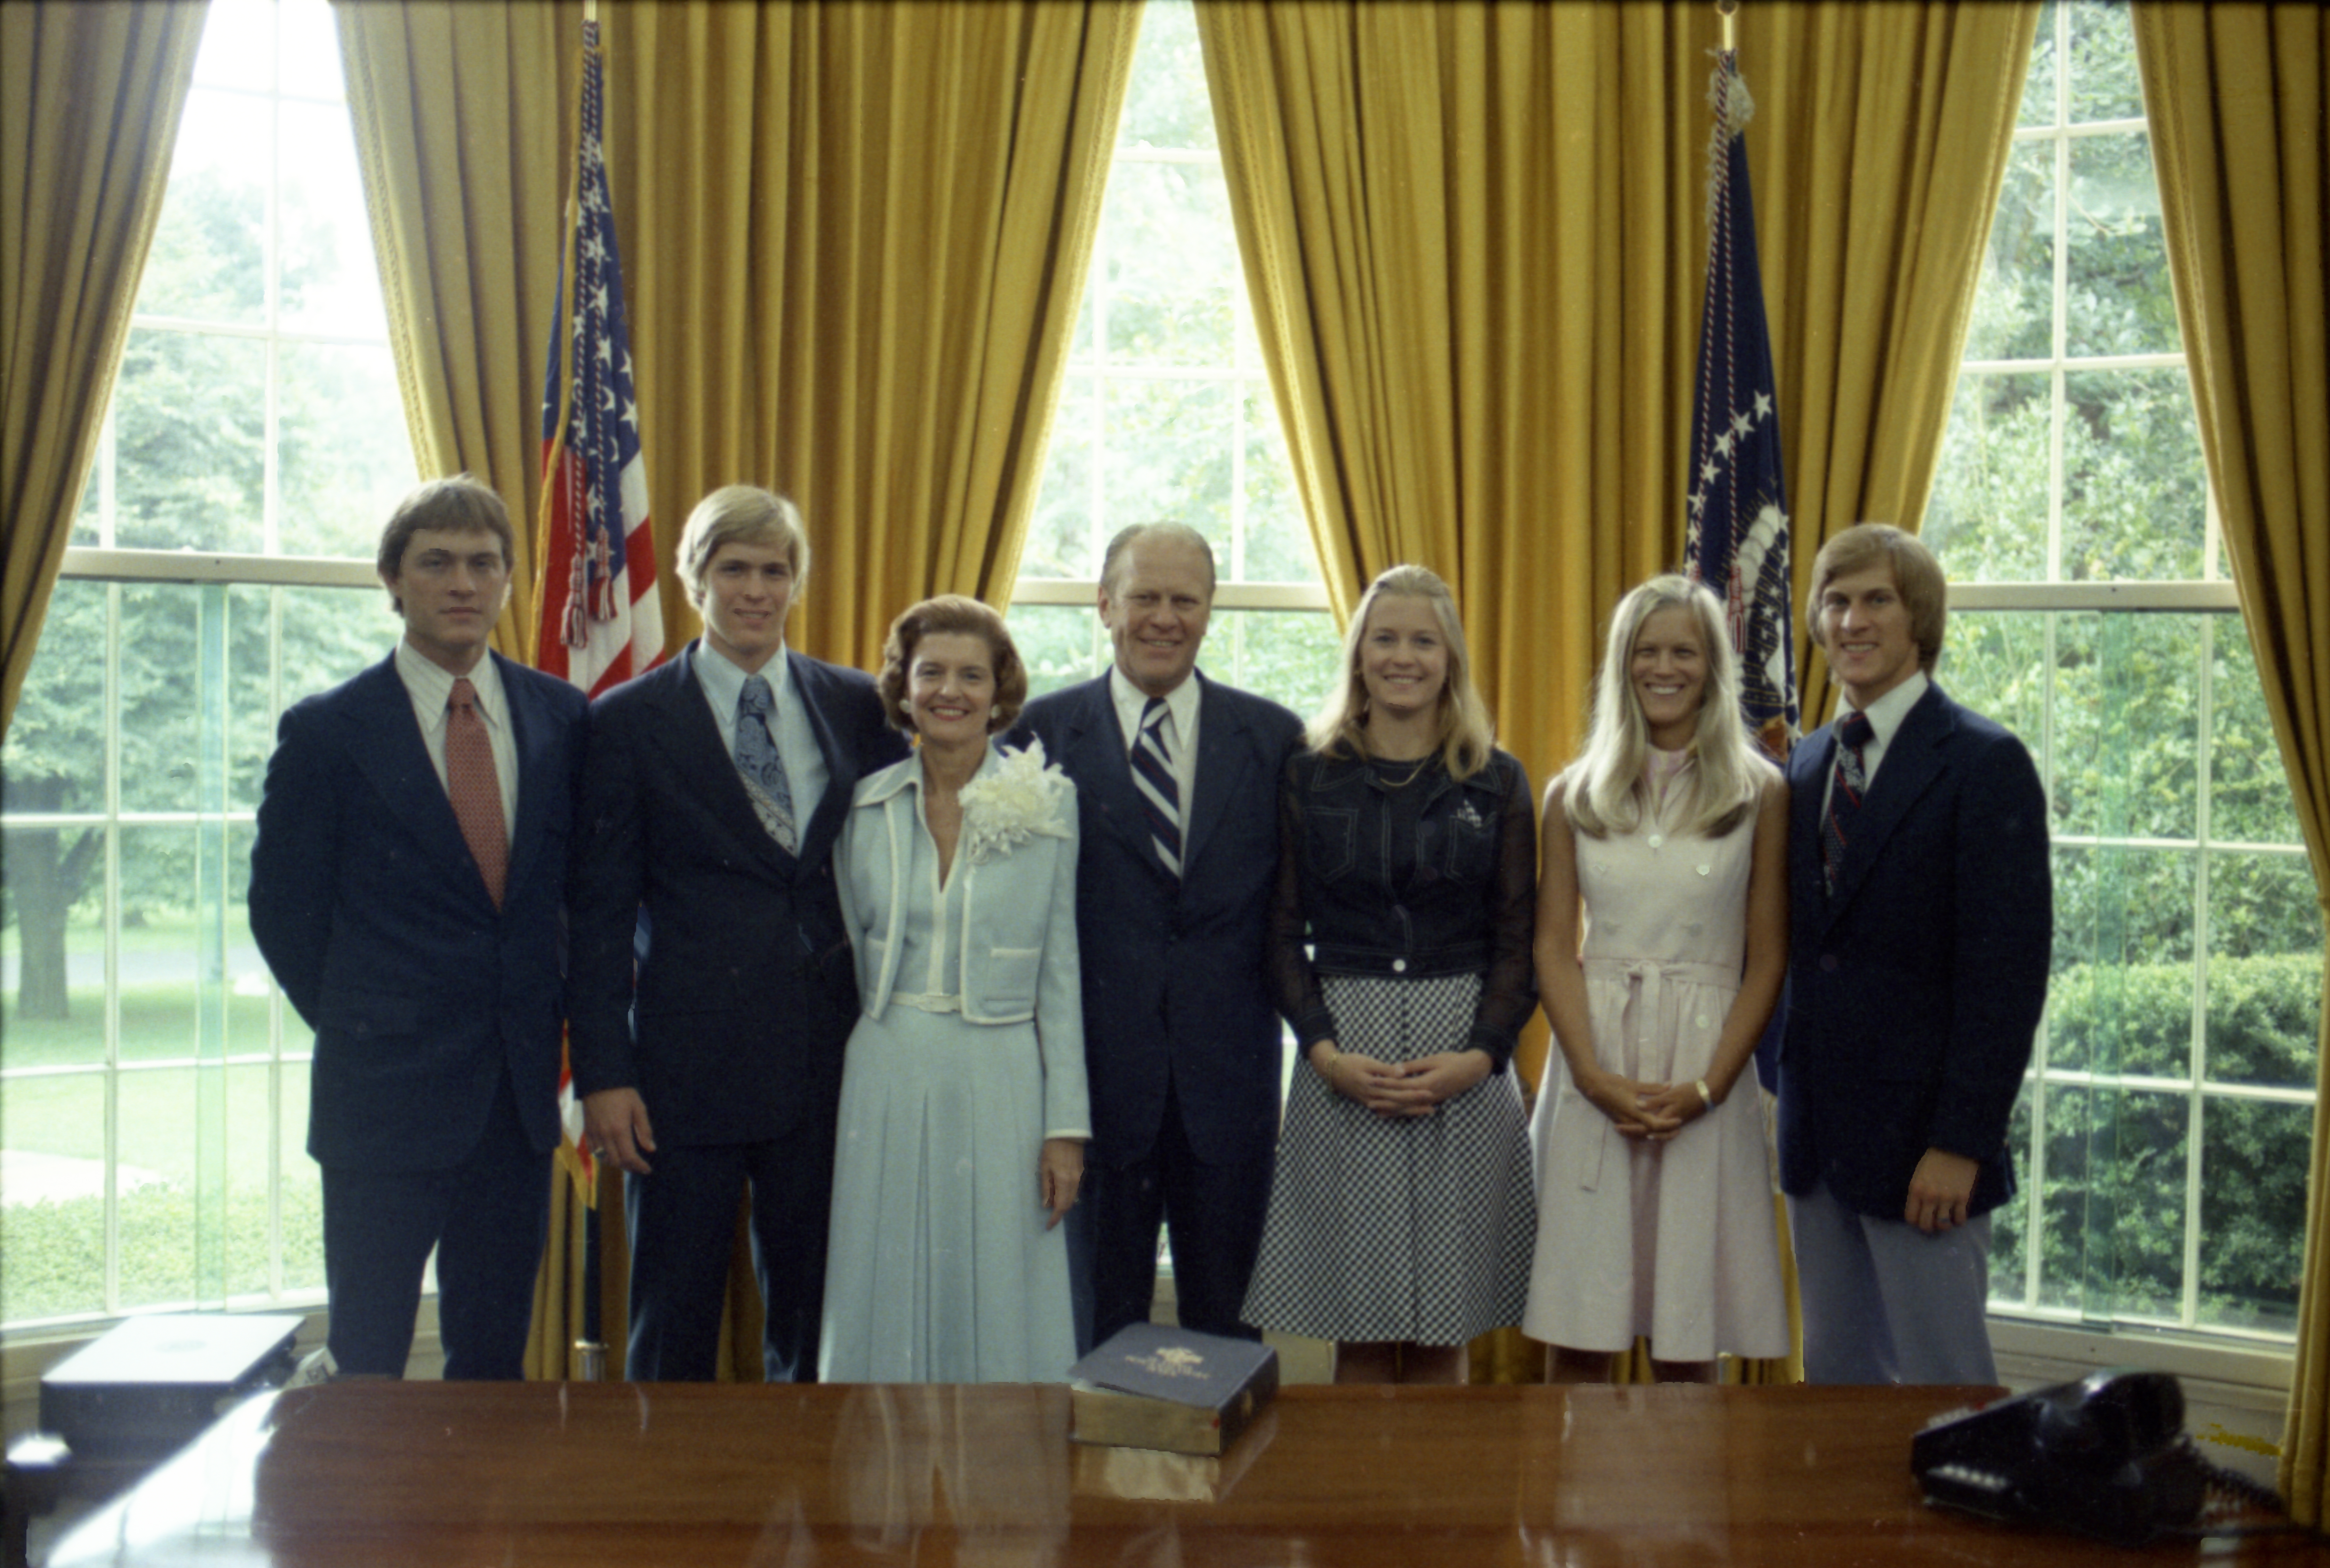 Ford Family in the Oval Office - 1974